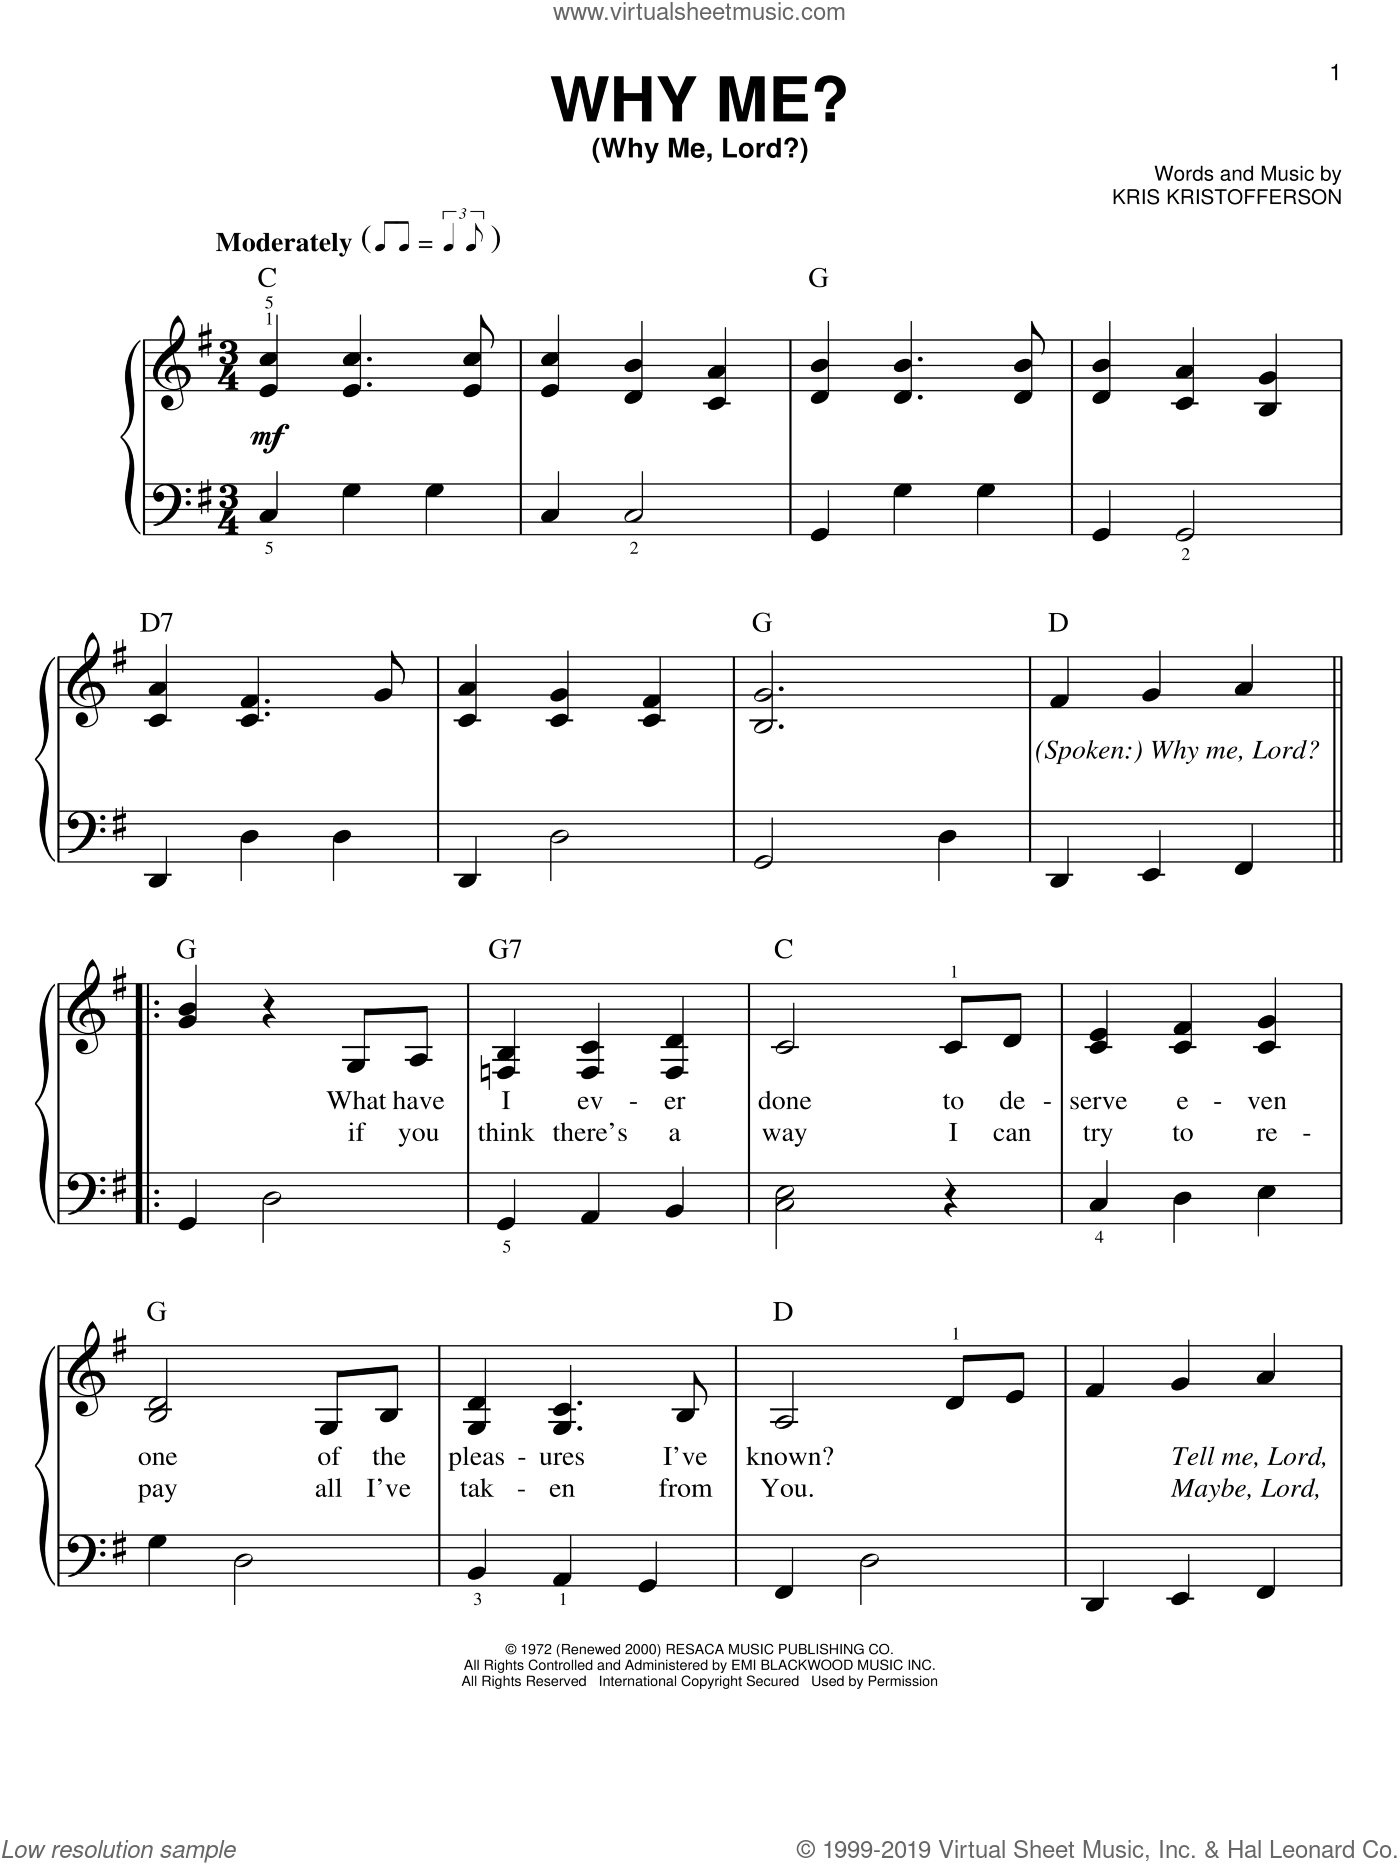 Why Me? (Why Me, Lord?) sheet music for piano solo by Kris Kristofferson. Score Image Preview.